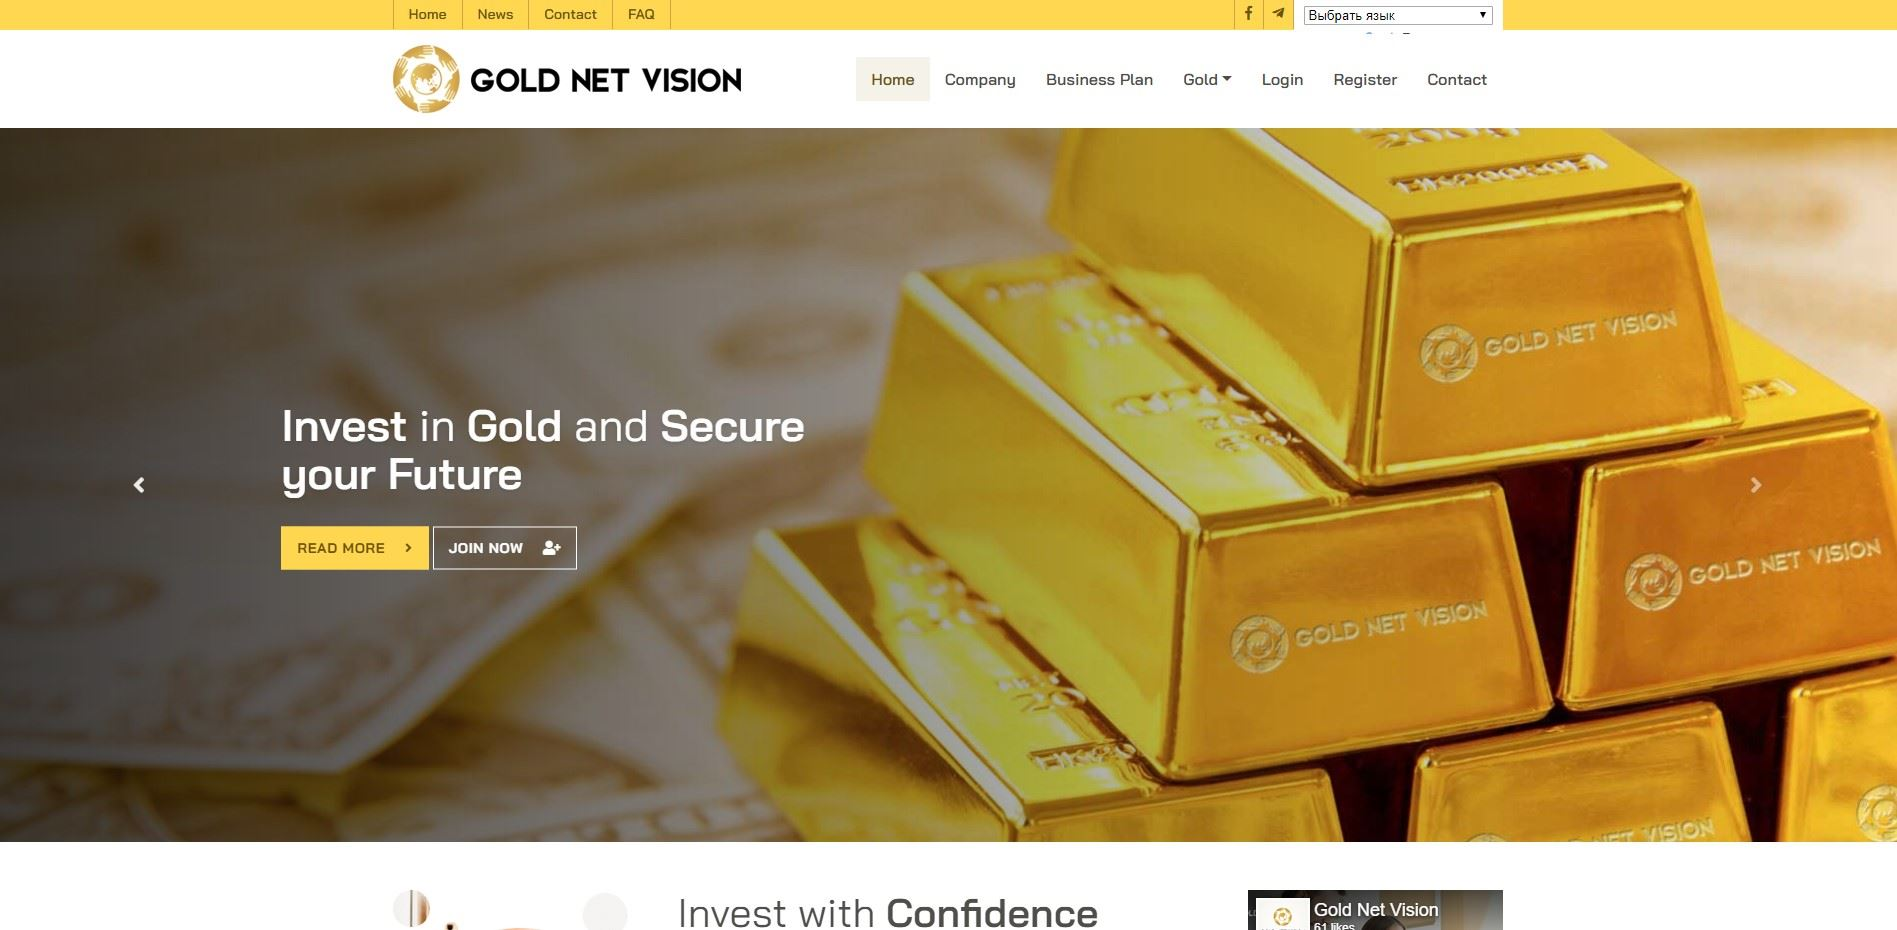 Gold net vision